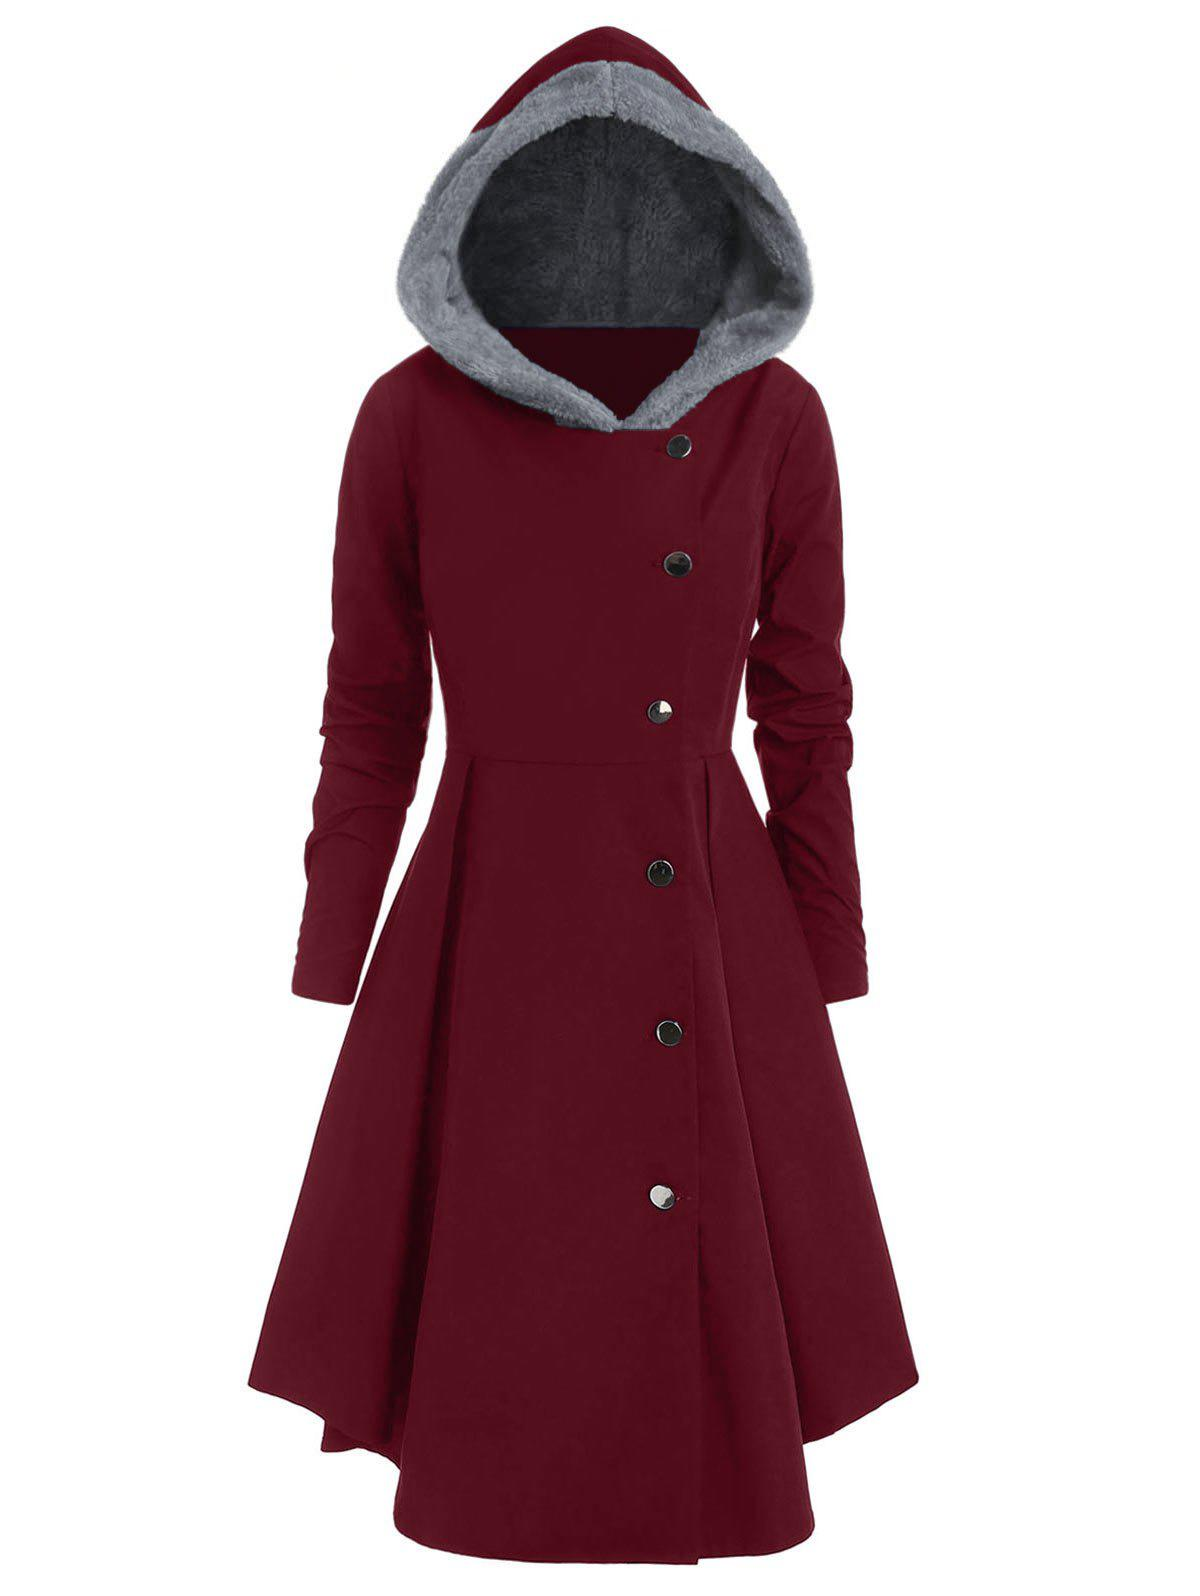 Plus Size Asymmetric Contrast Hooded Skirted Coat - RED WINE 2X